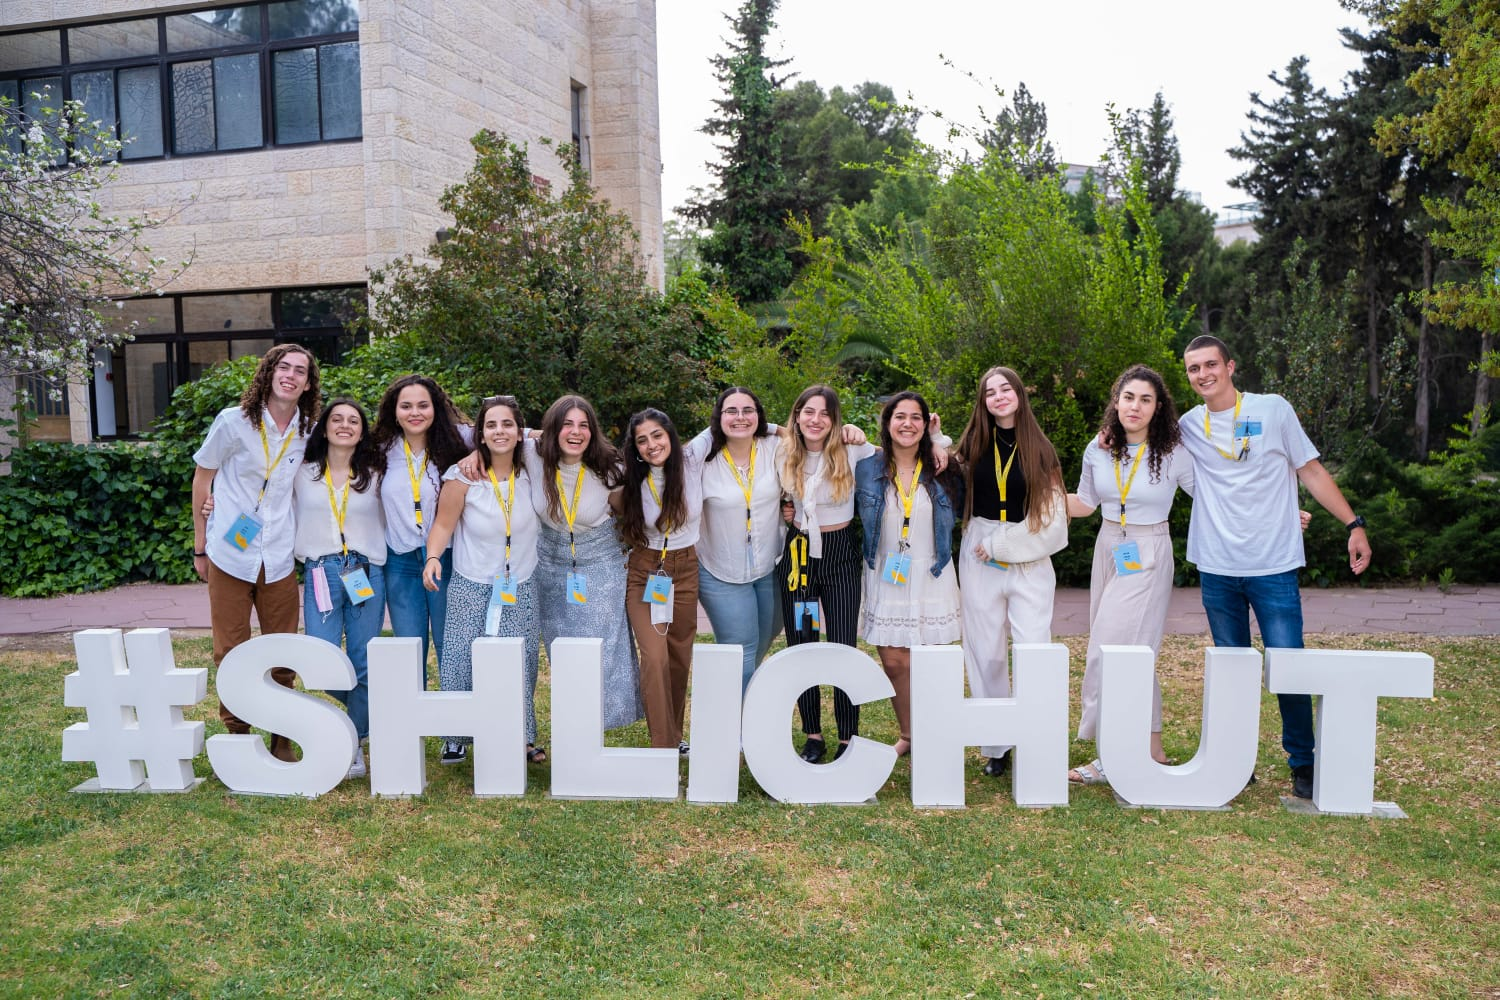 Shinshinim participants standing together in front of #shlichut